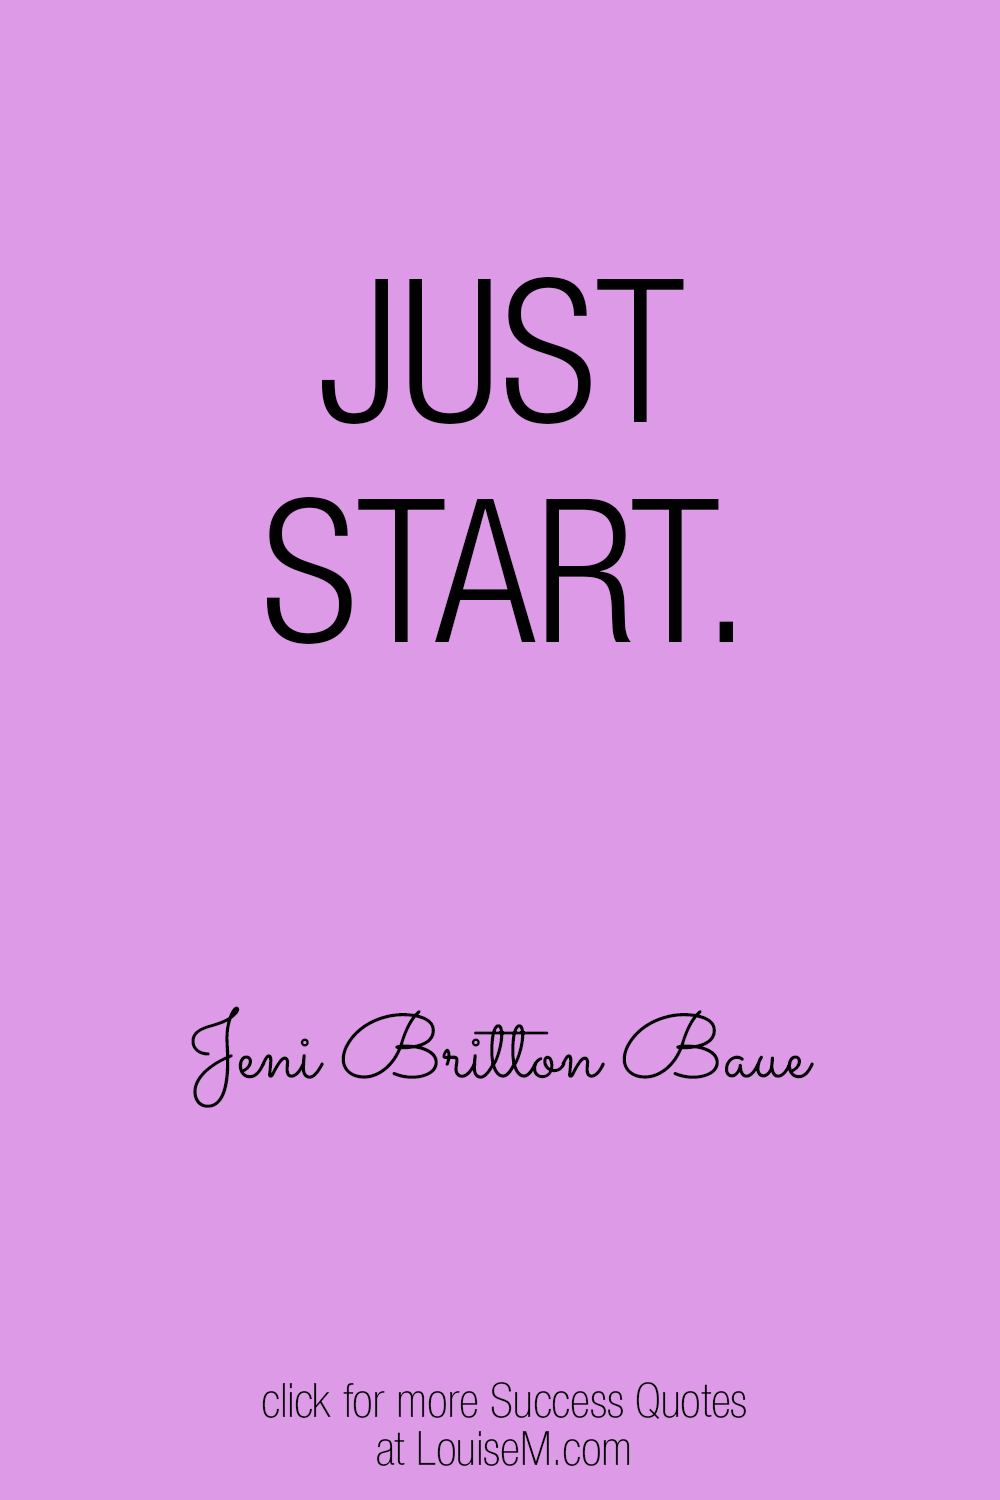 just start success quote image